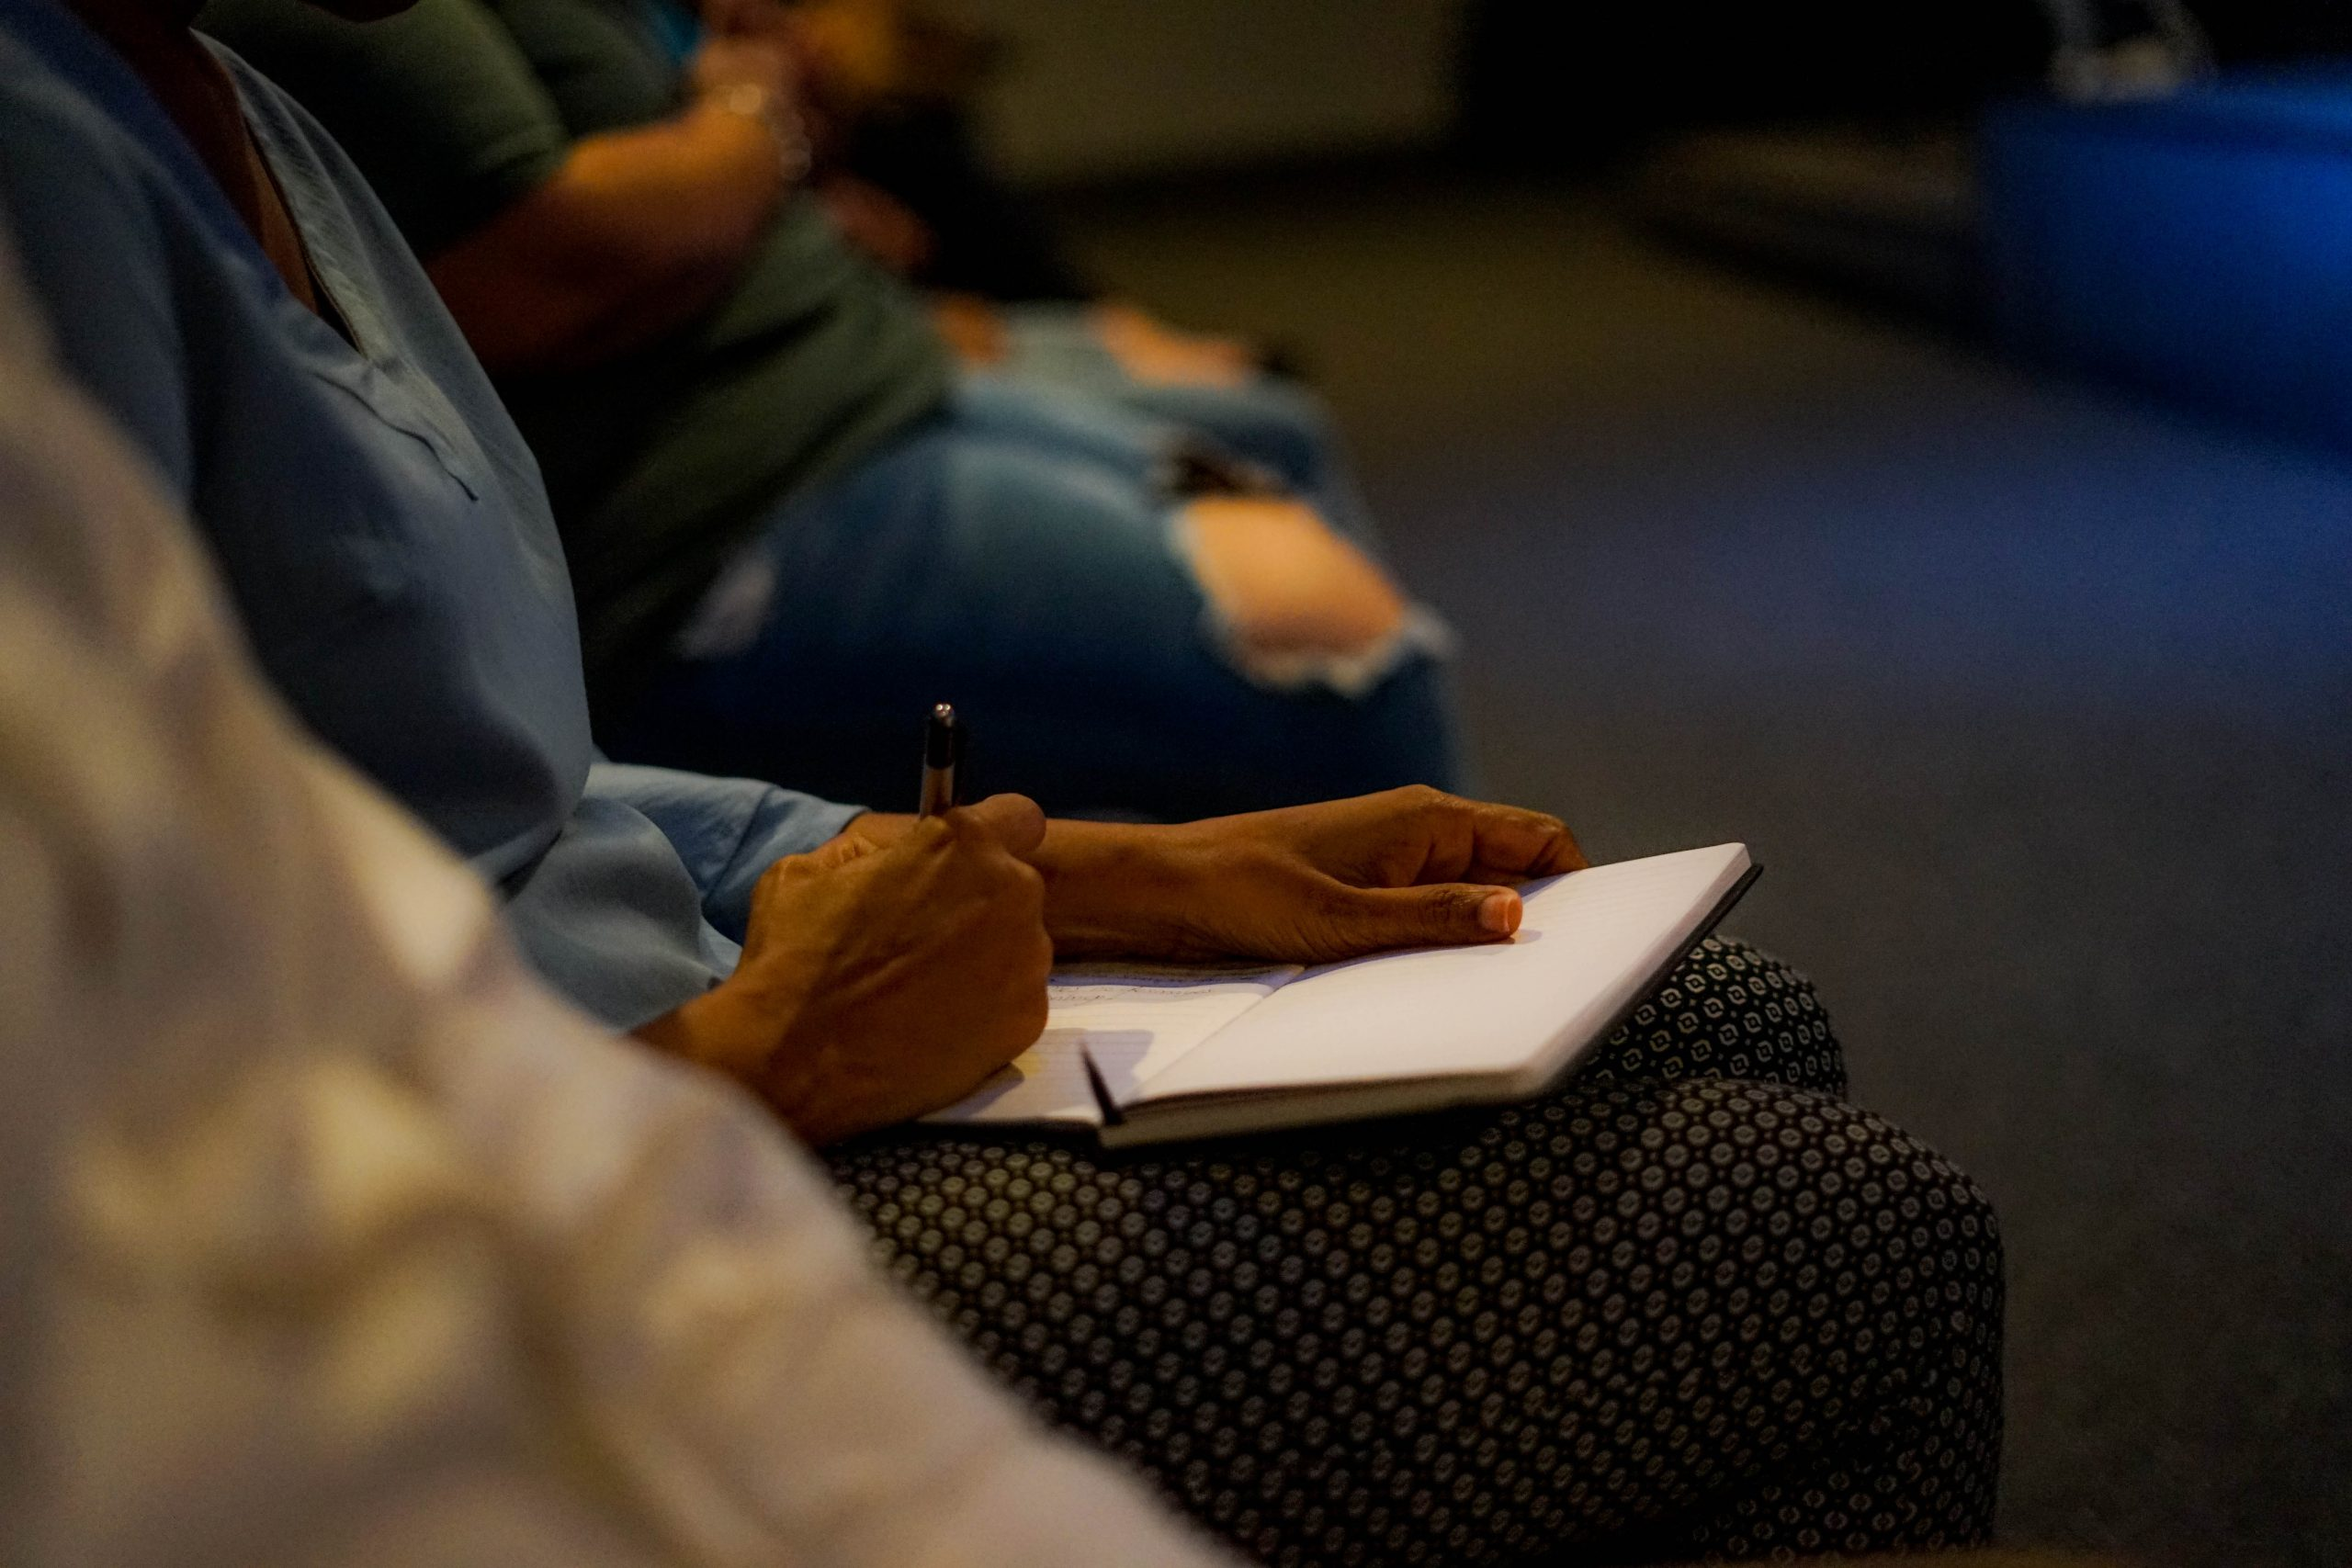 Free Sermon Resources Based on Small Group Studies